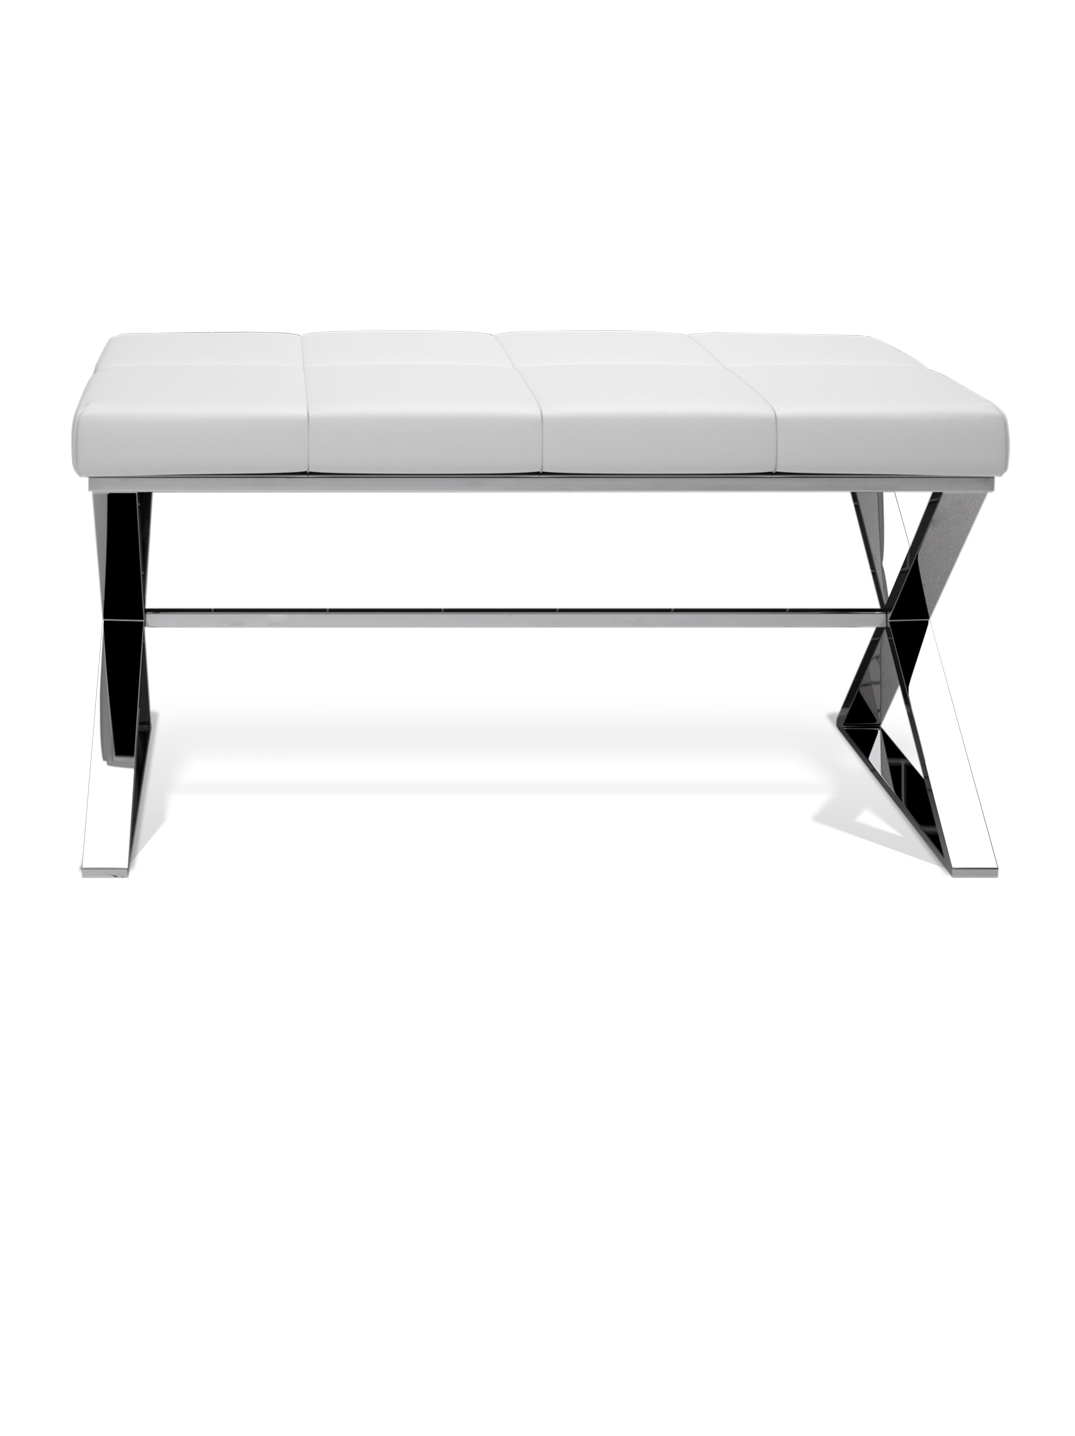 decor-walther-bench-sitzbank